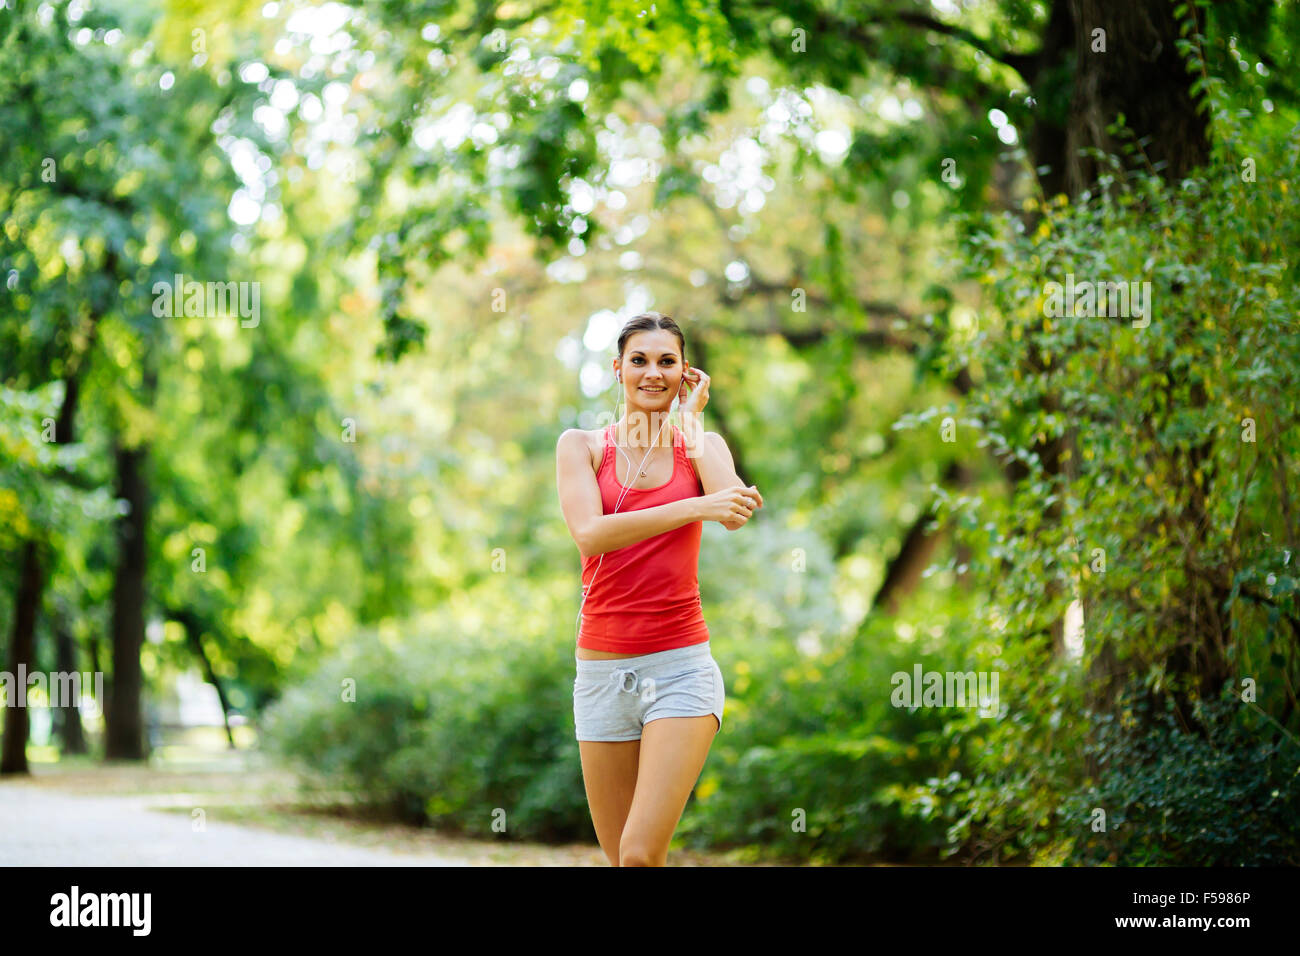 Beautiful young jogger in park listening to music through earphones while running Stock Photo